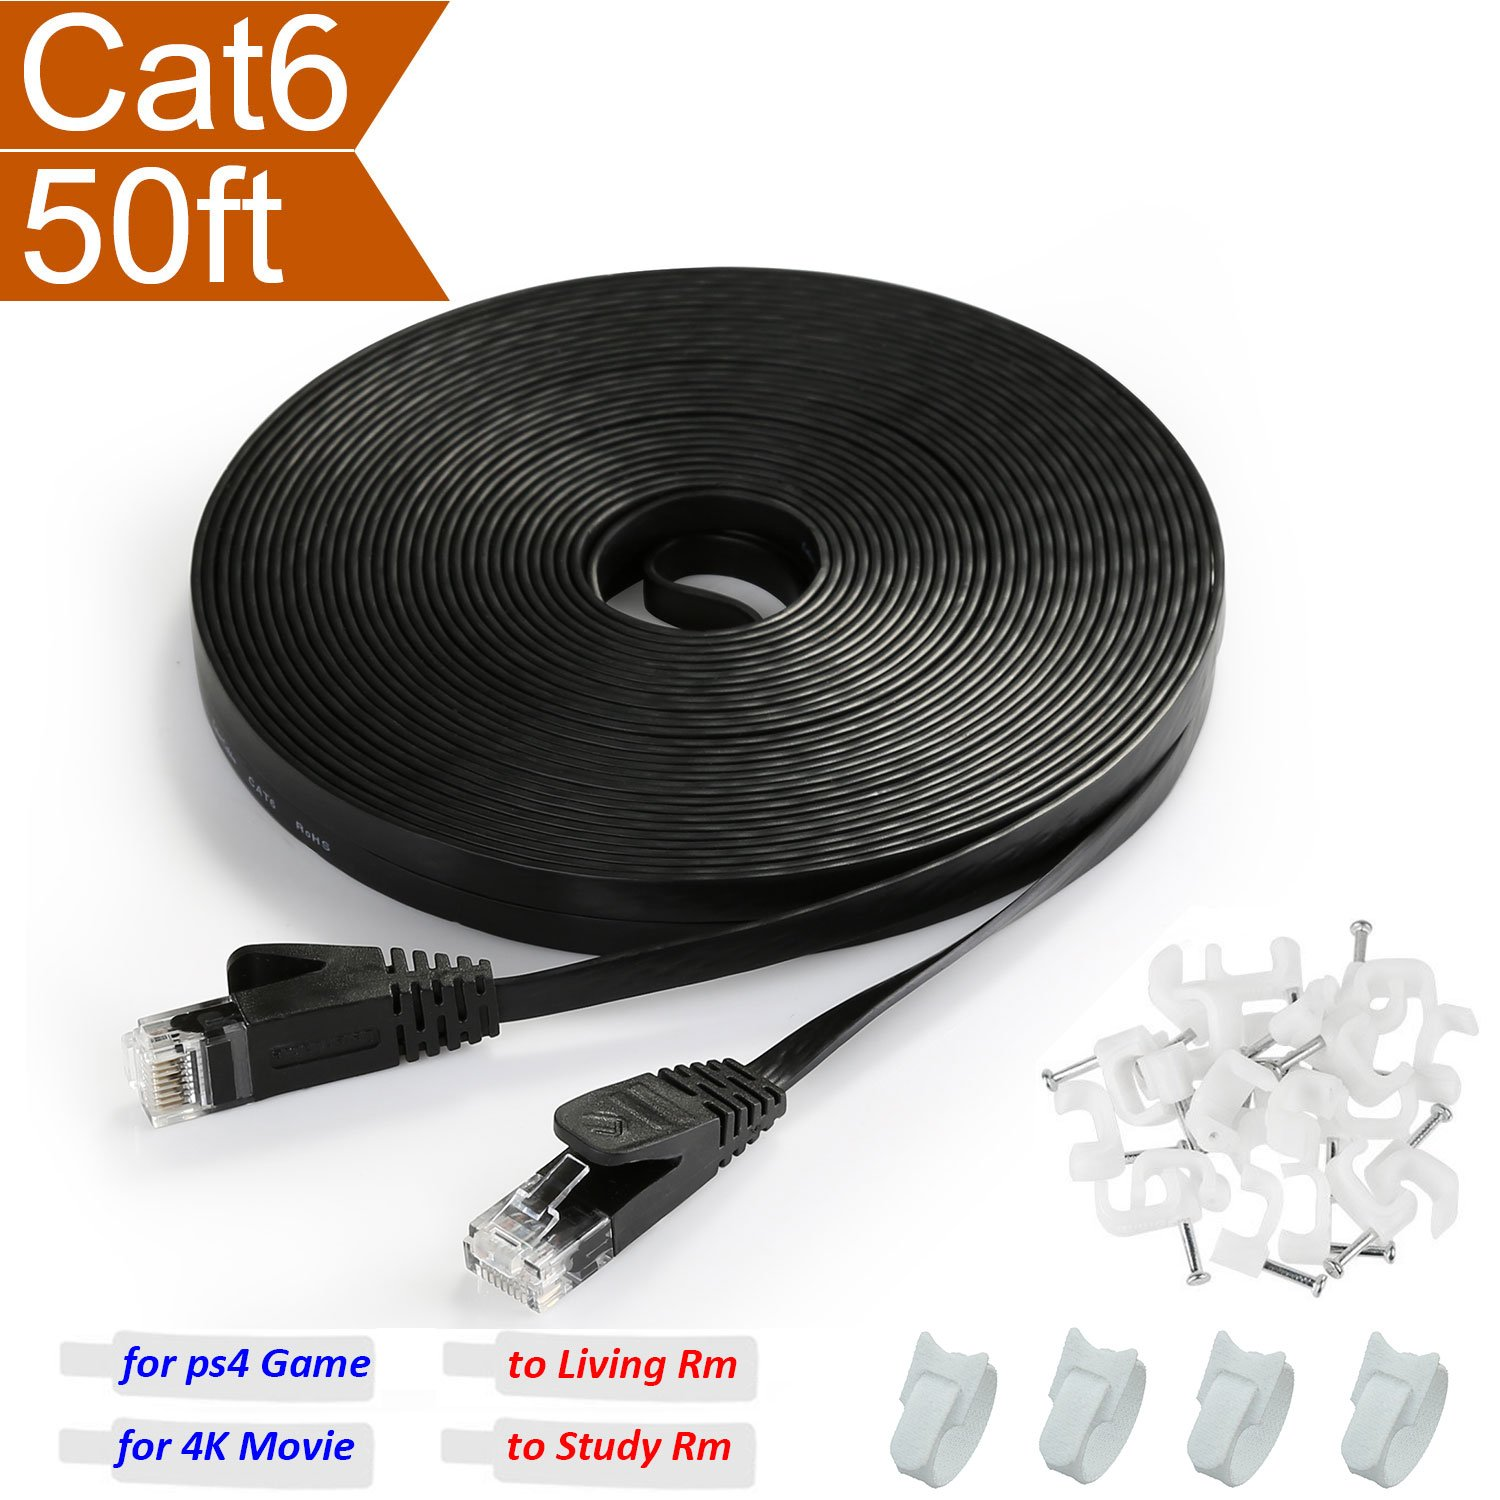 Best Rated In Cat 5 Ethernet Cables Helpful Customer Reviews Cat5e Wiring On Figure 4 Diagram For An Crossover Cable Black Flat 50 Ft 6 With Rj45 Connector Thin Slim Fast Internet